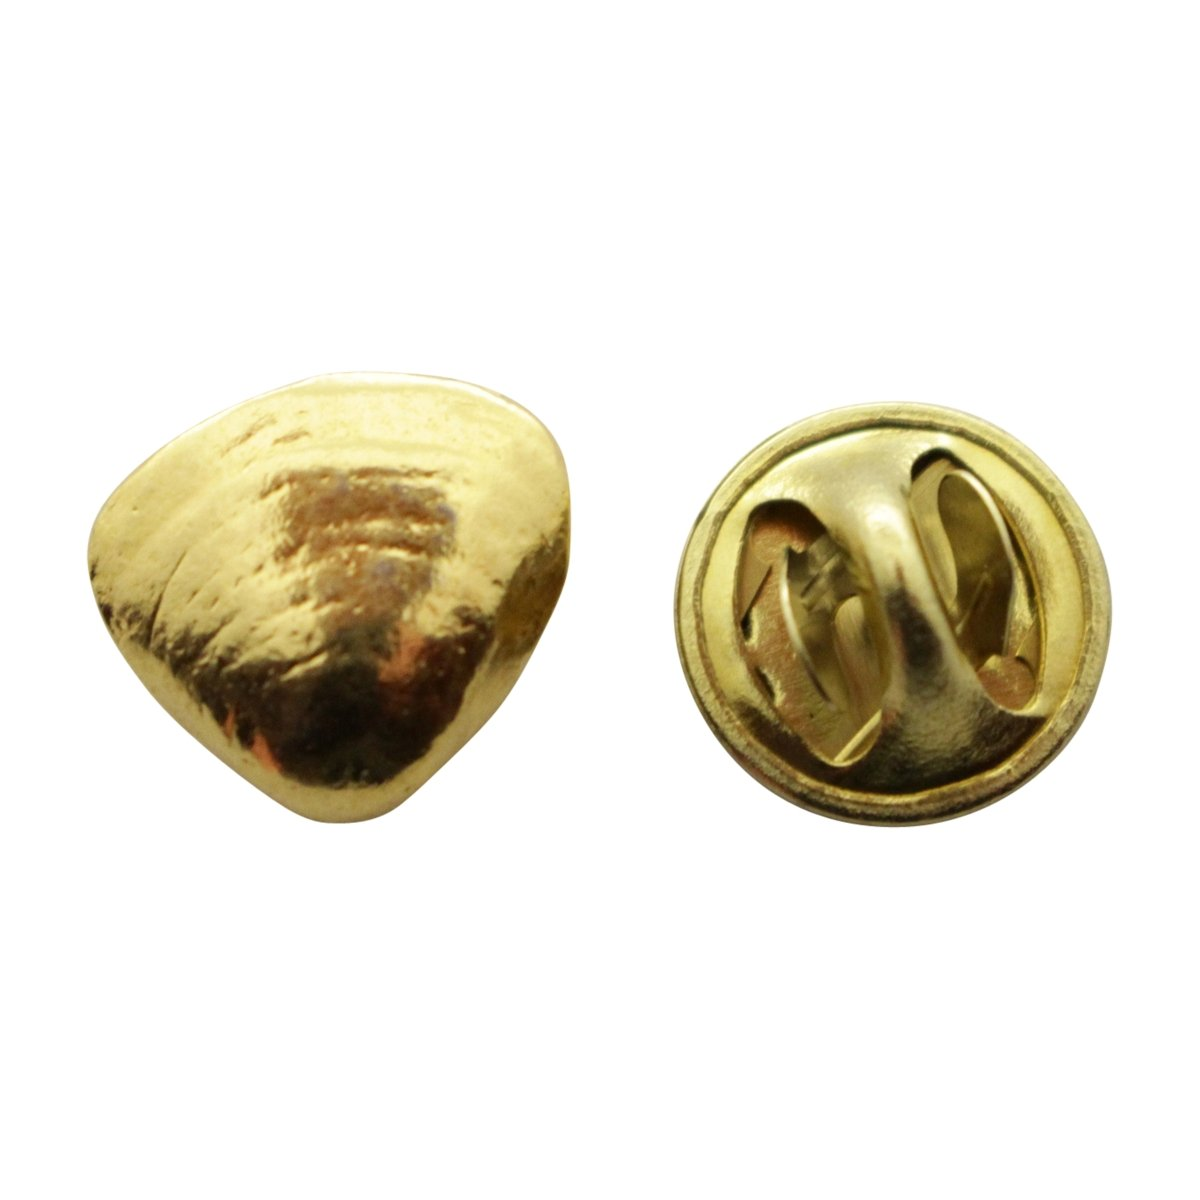 Clam Mini Pin ~ 24K Gold ~ Miniature Lapel Pin ~ Sarah's Treats & Treasures